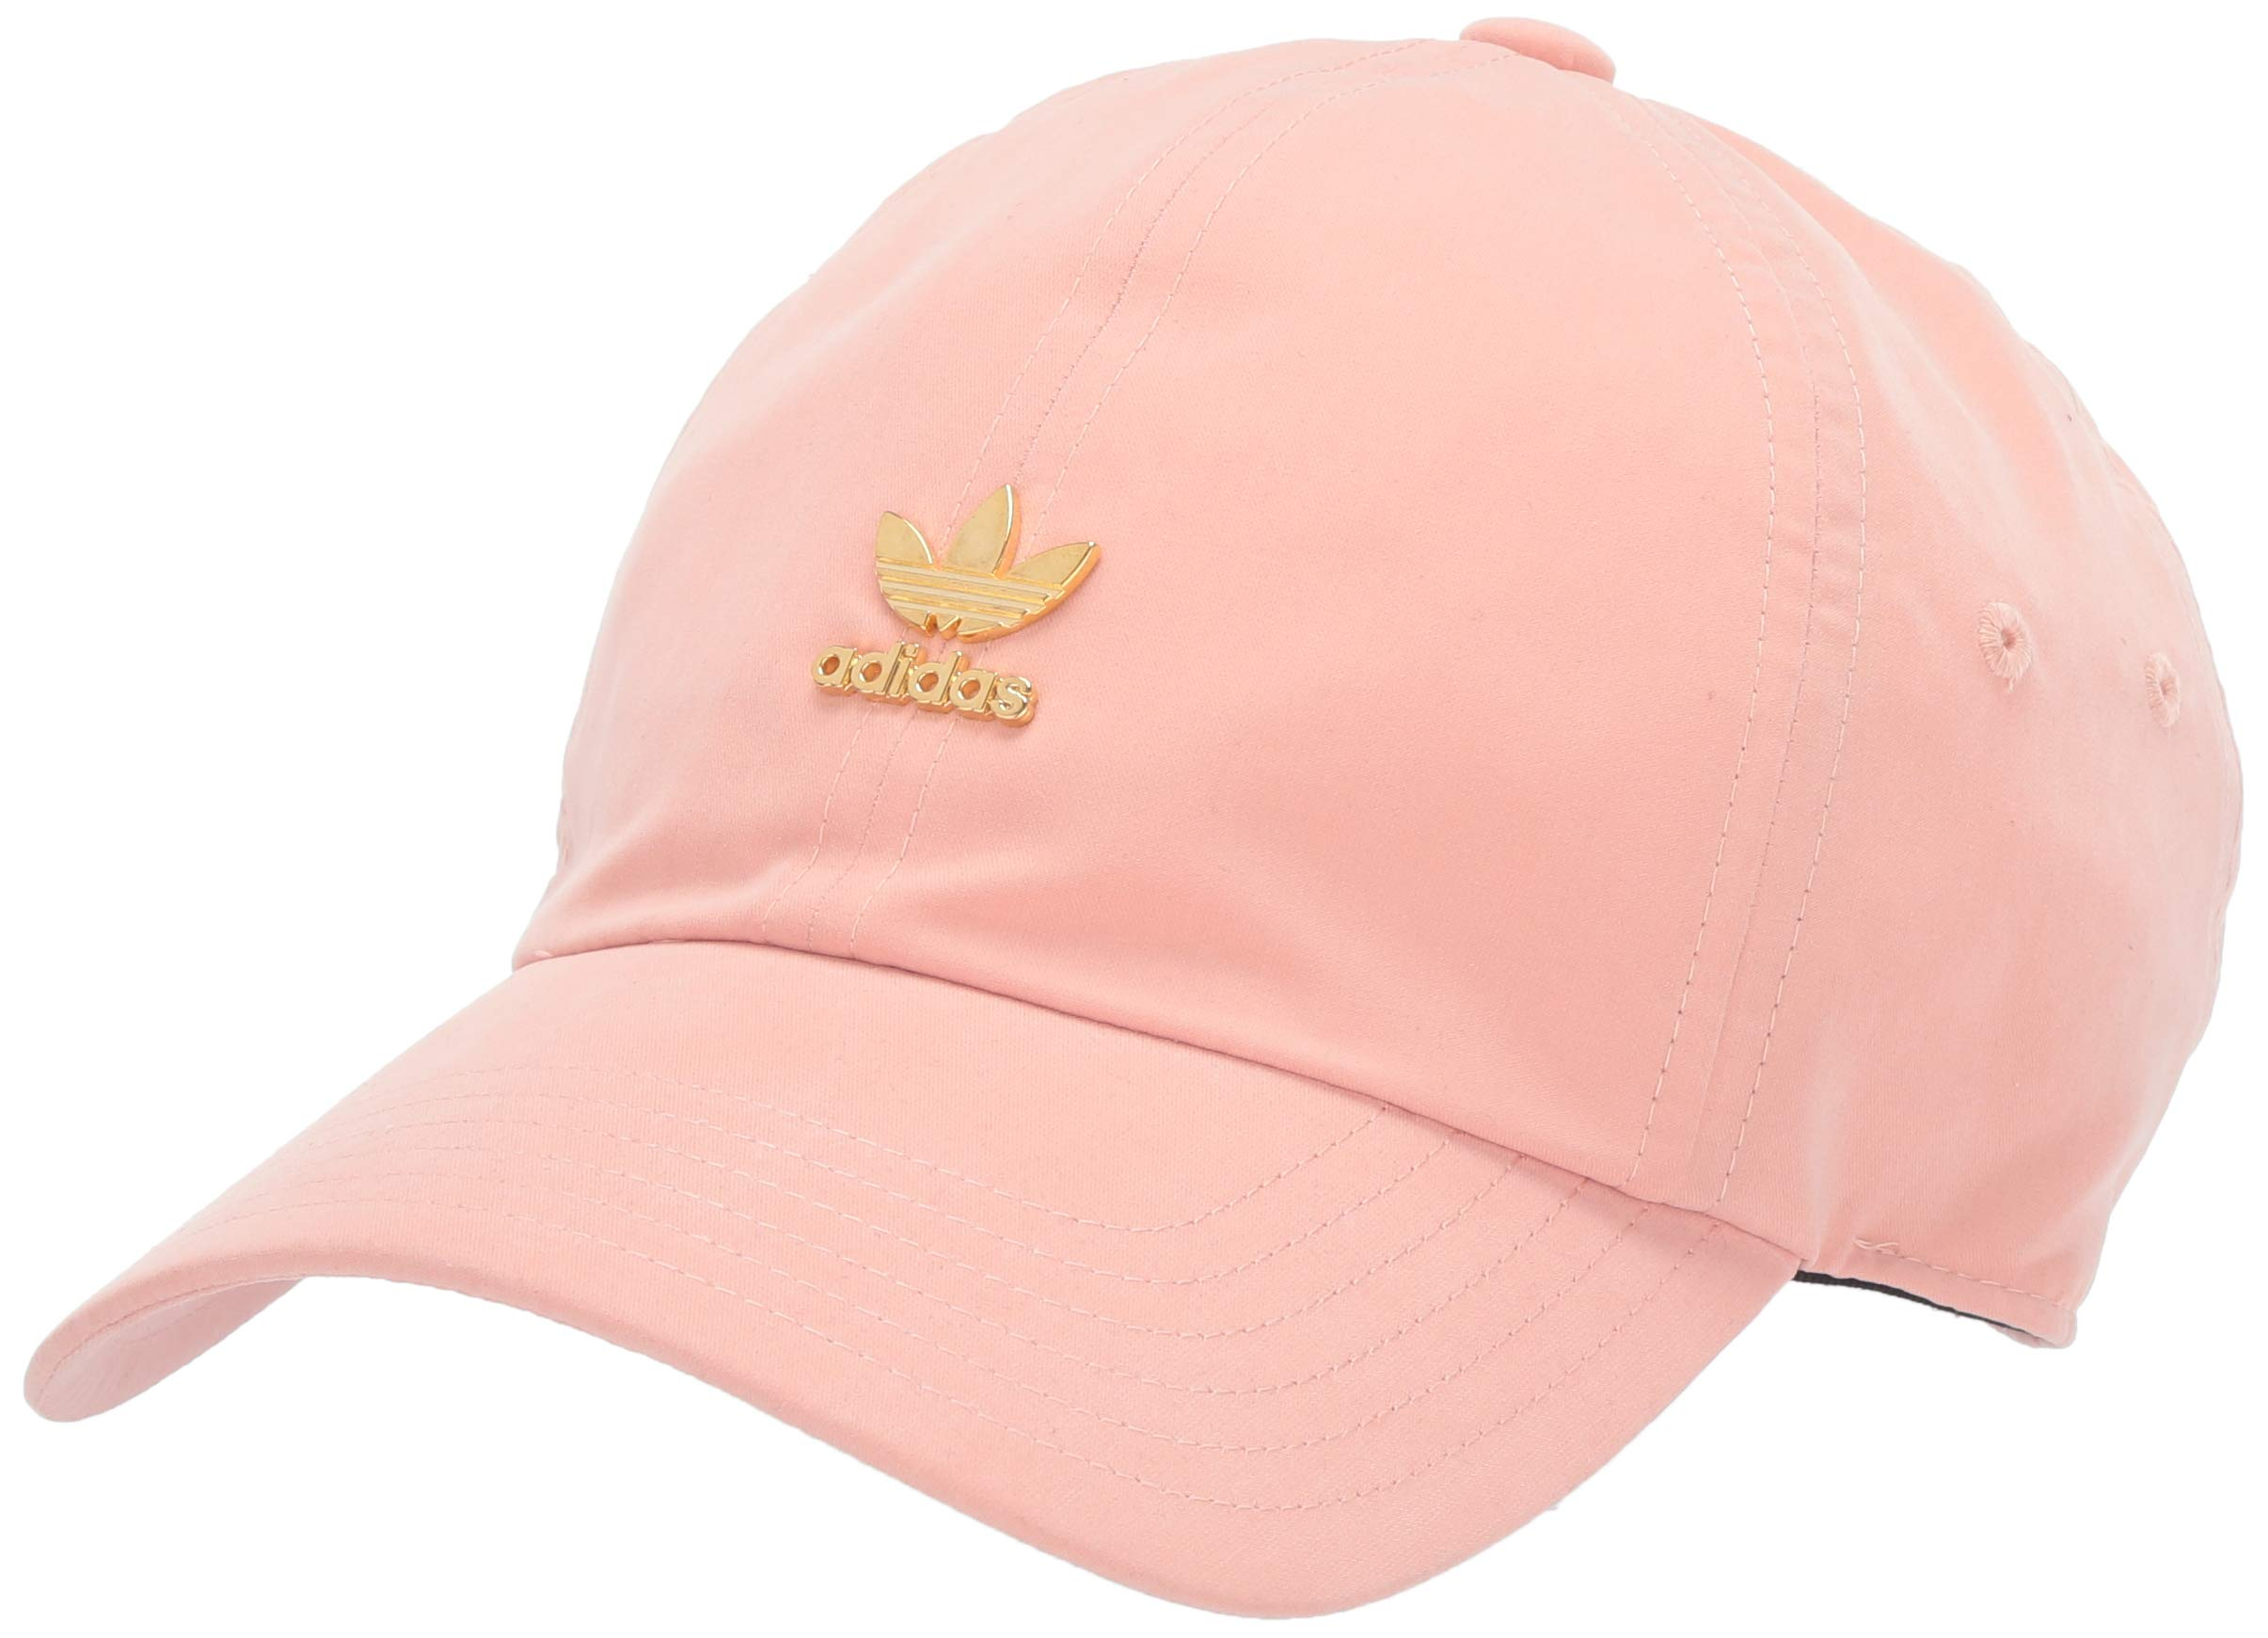 adidas Women's Originals Relaxed Metal Logo Strapback Cap, Dust Pink/Gold, One Size